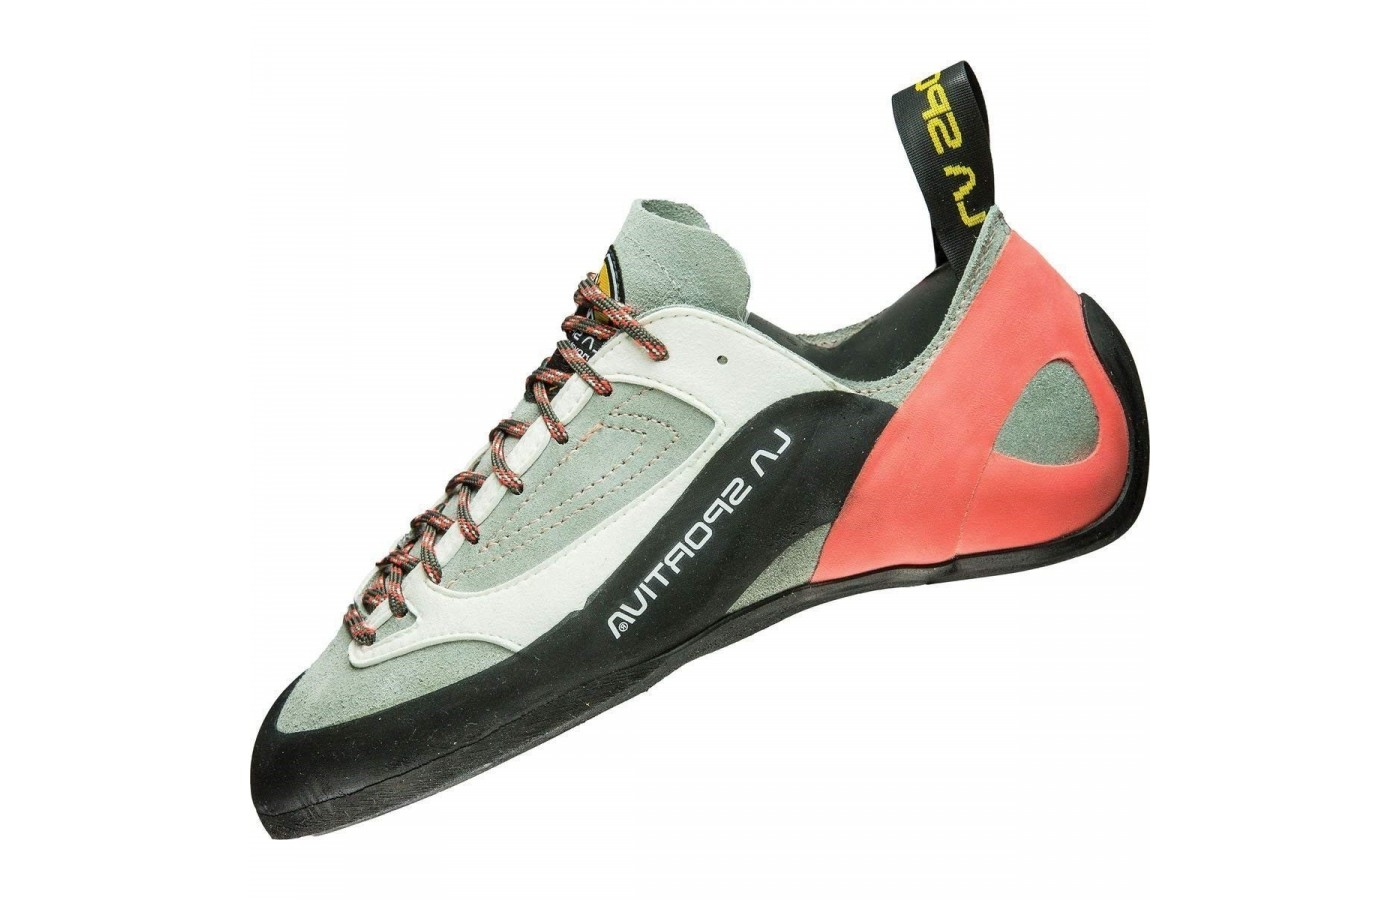 The La Sportiva Finale is an introductory climbing shoe.